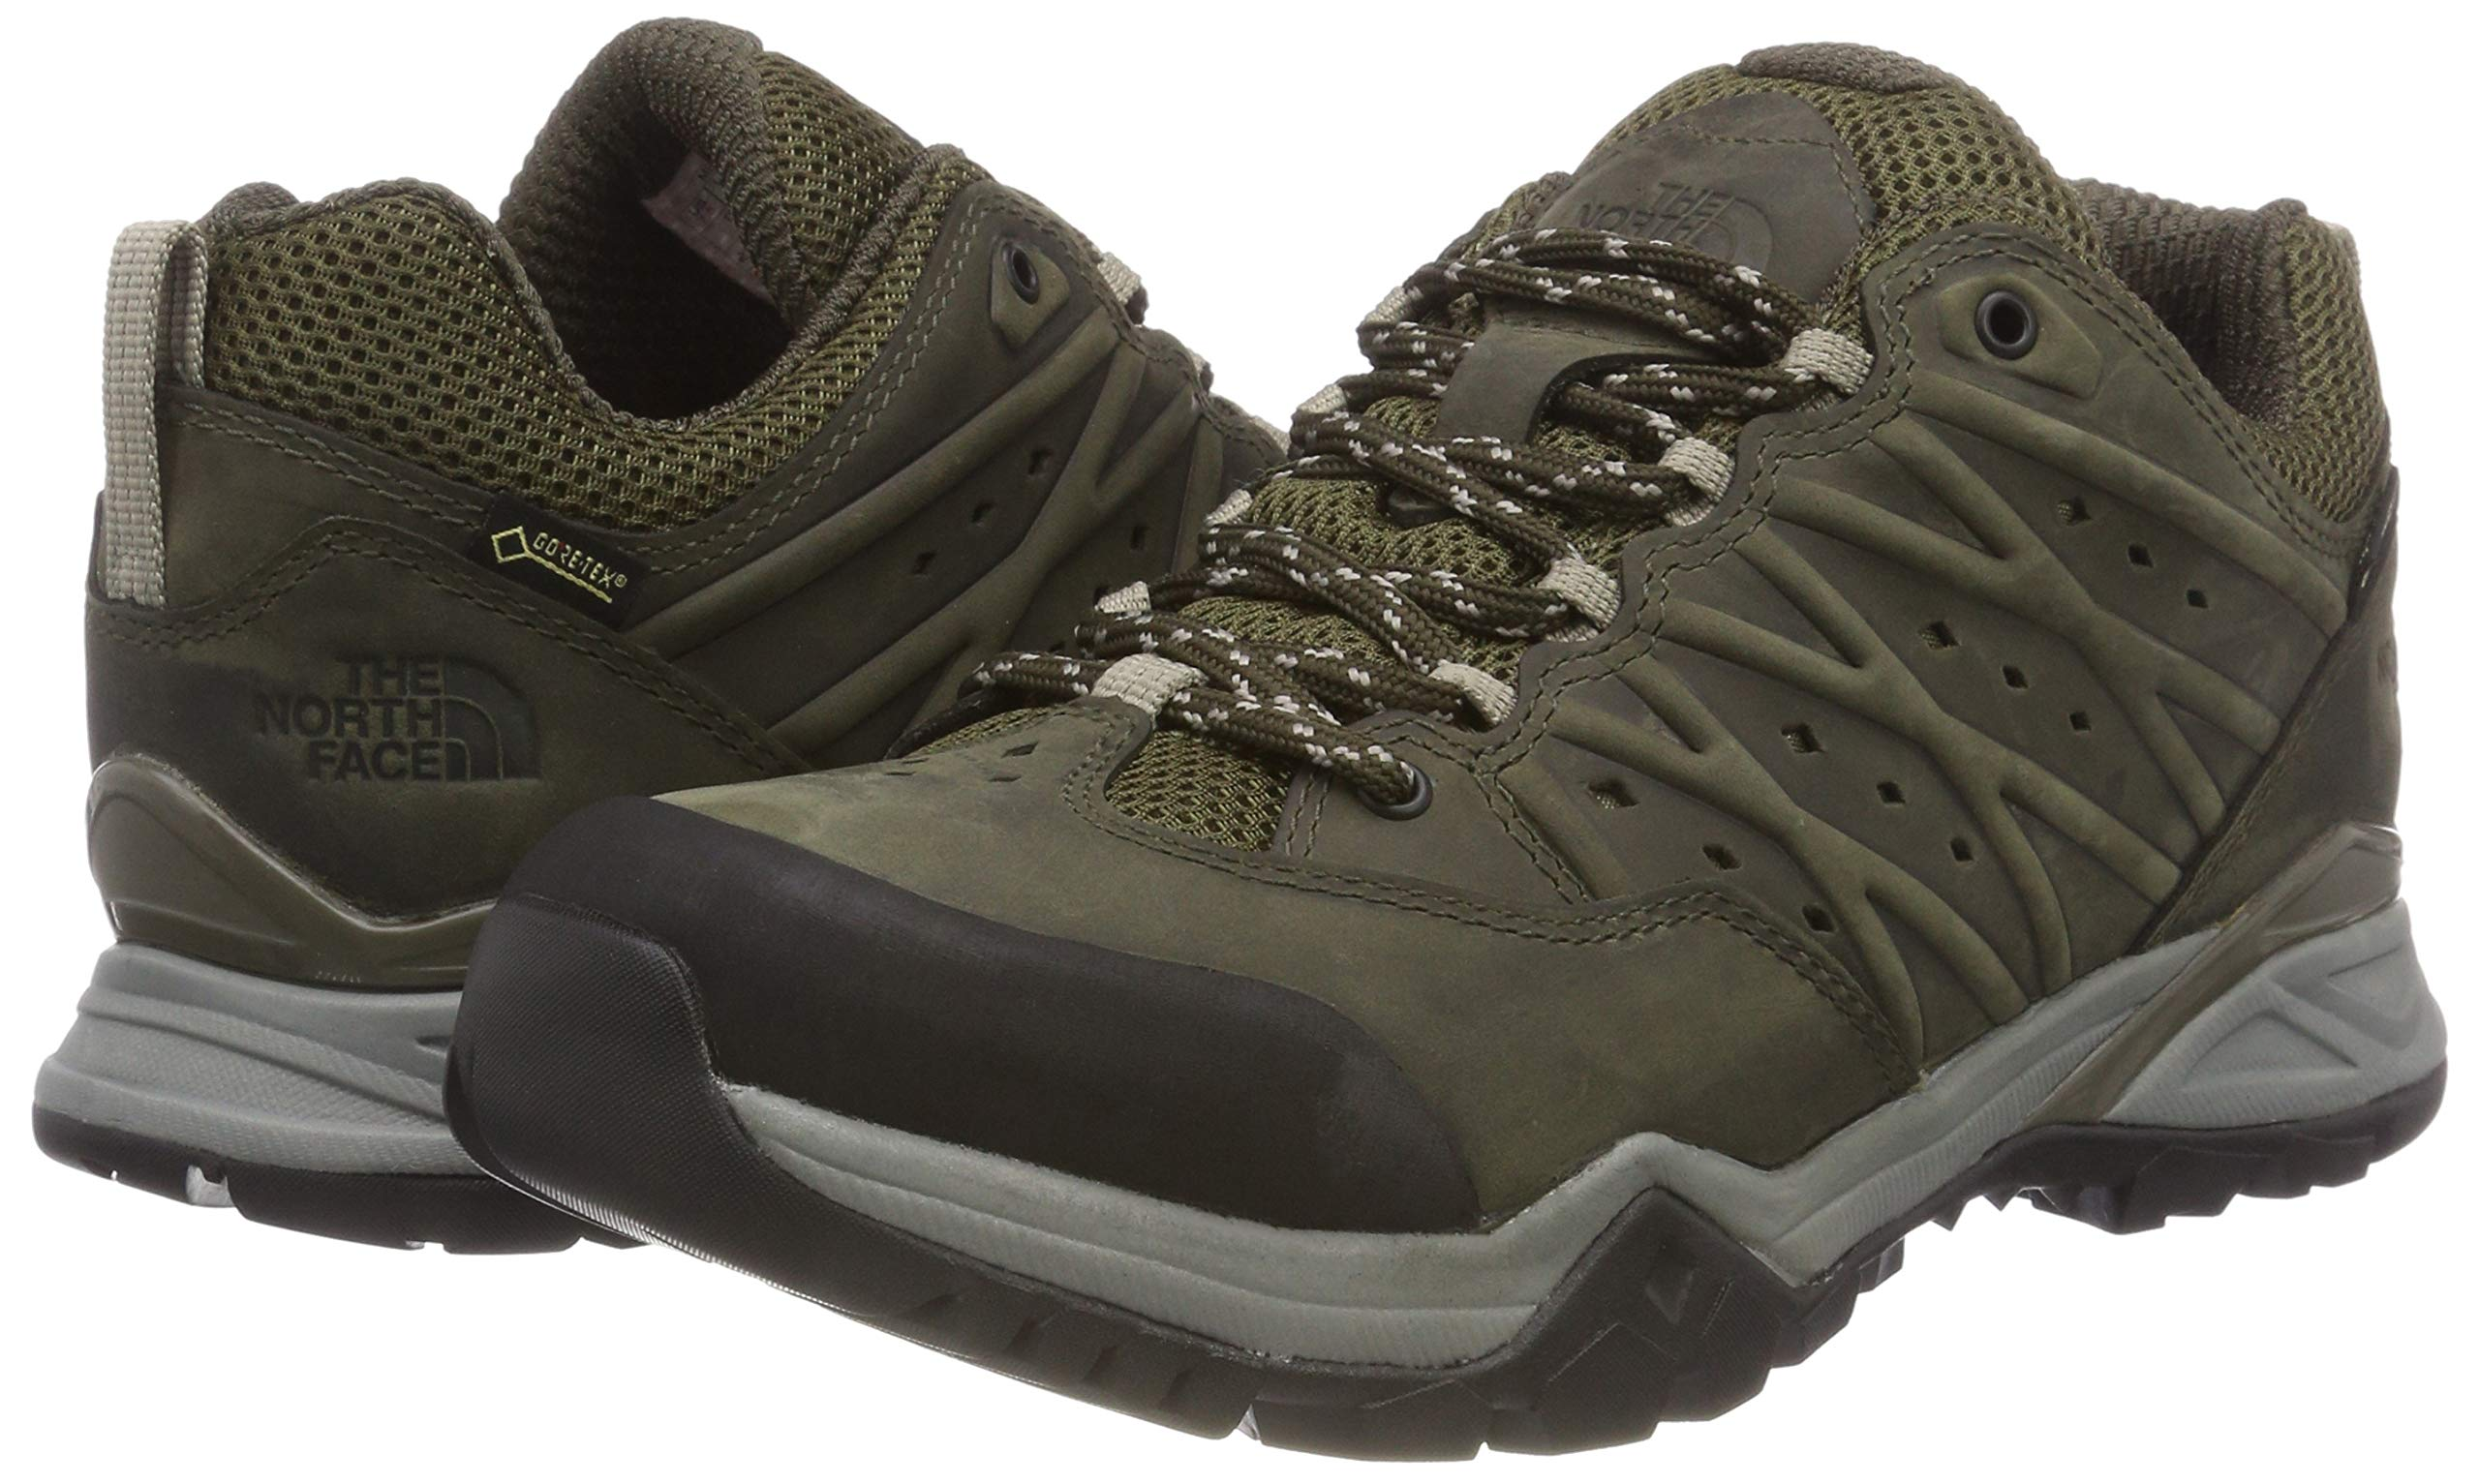 81c41TFhy1L - THE NORTH FACE Men's Hedgehog Ii GTX Low Rise Hiking Boots